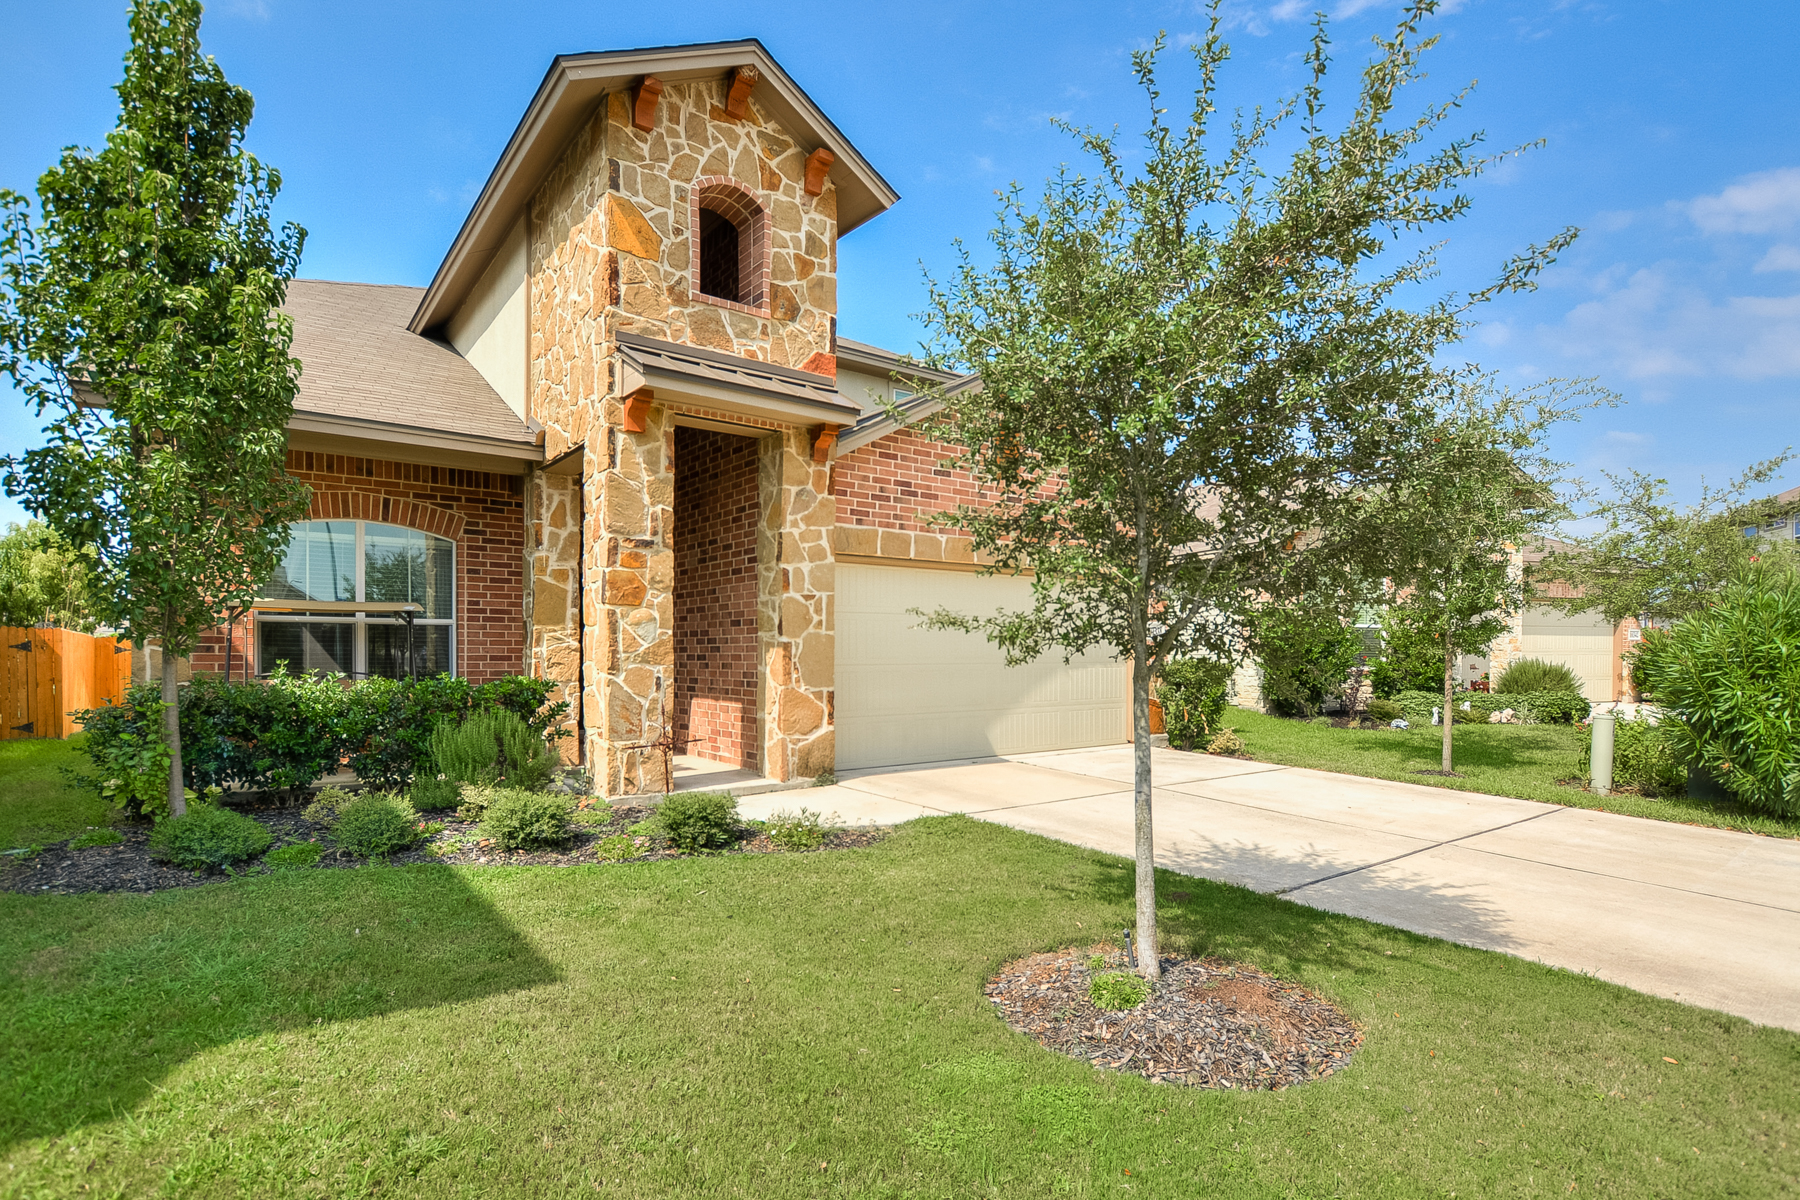 Single Family Home for Sale at Exquisite Property in Wildhorse 10338 Floore Holw San Antonio, Texas 78254 United States